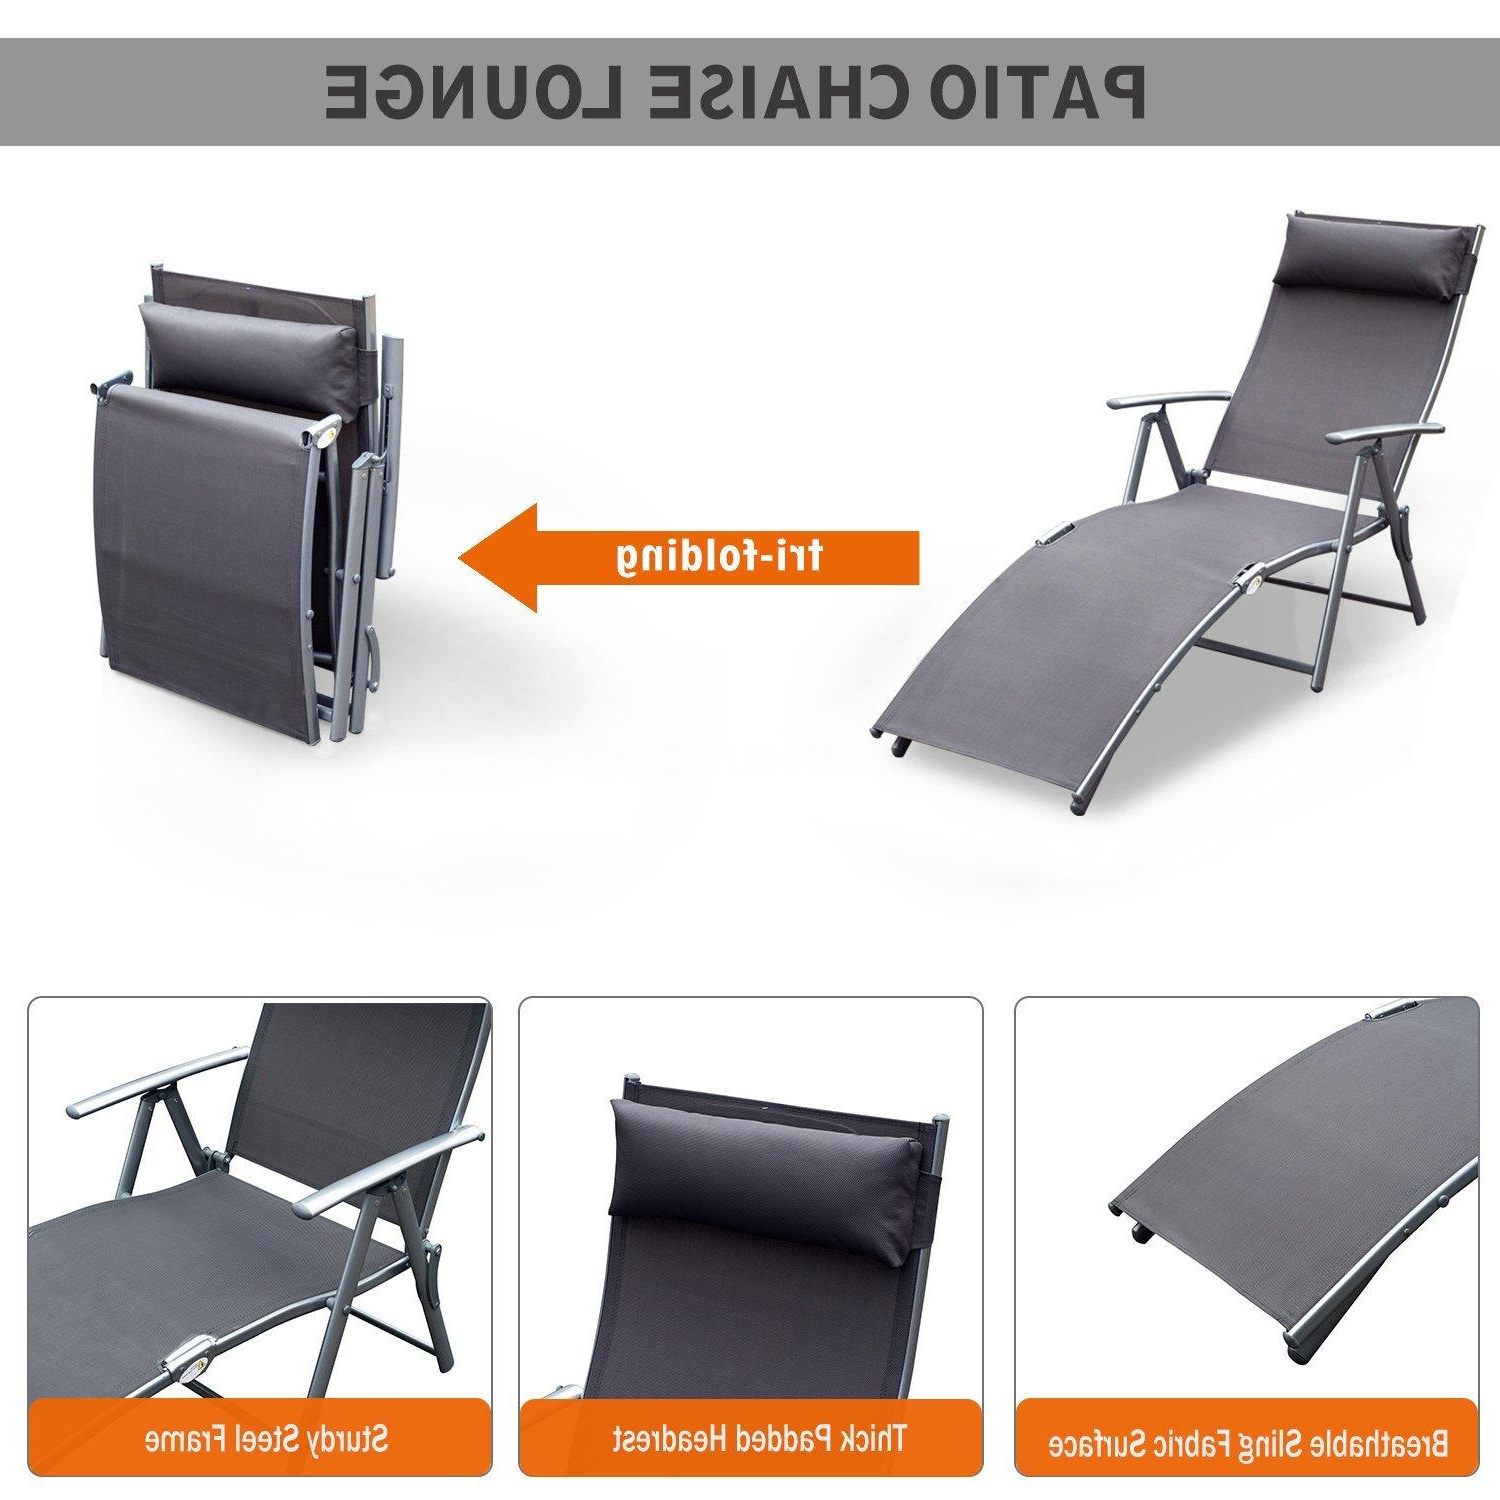 Details About Steel Sling Fabric Outdoor Folding Chaise Lounge Chair Recliner – Grey K5c3 With Well Known Steel Sling Fabric Outdoor Folding Chaise Lounges (View 7 of 25)